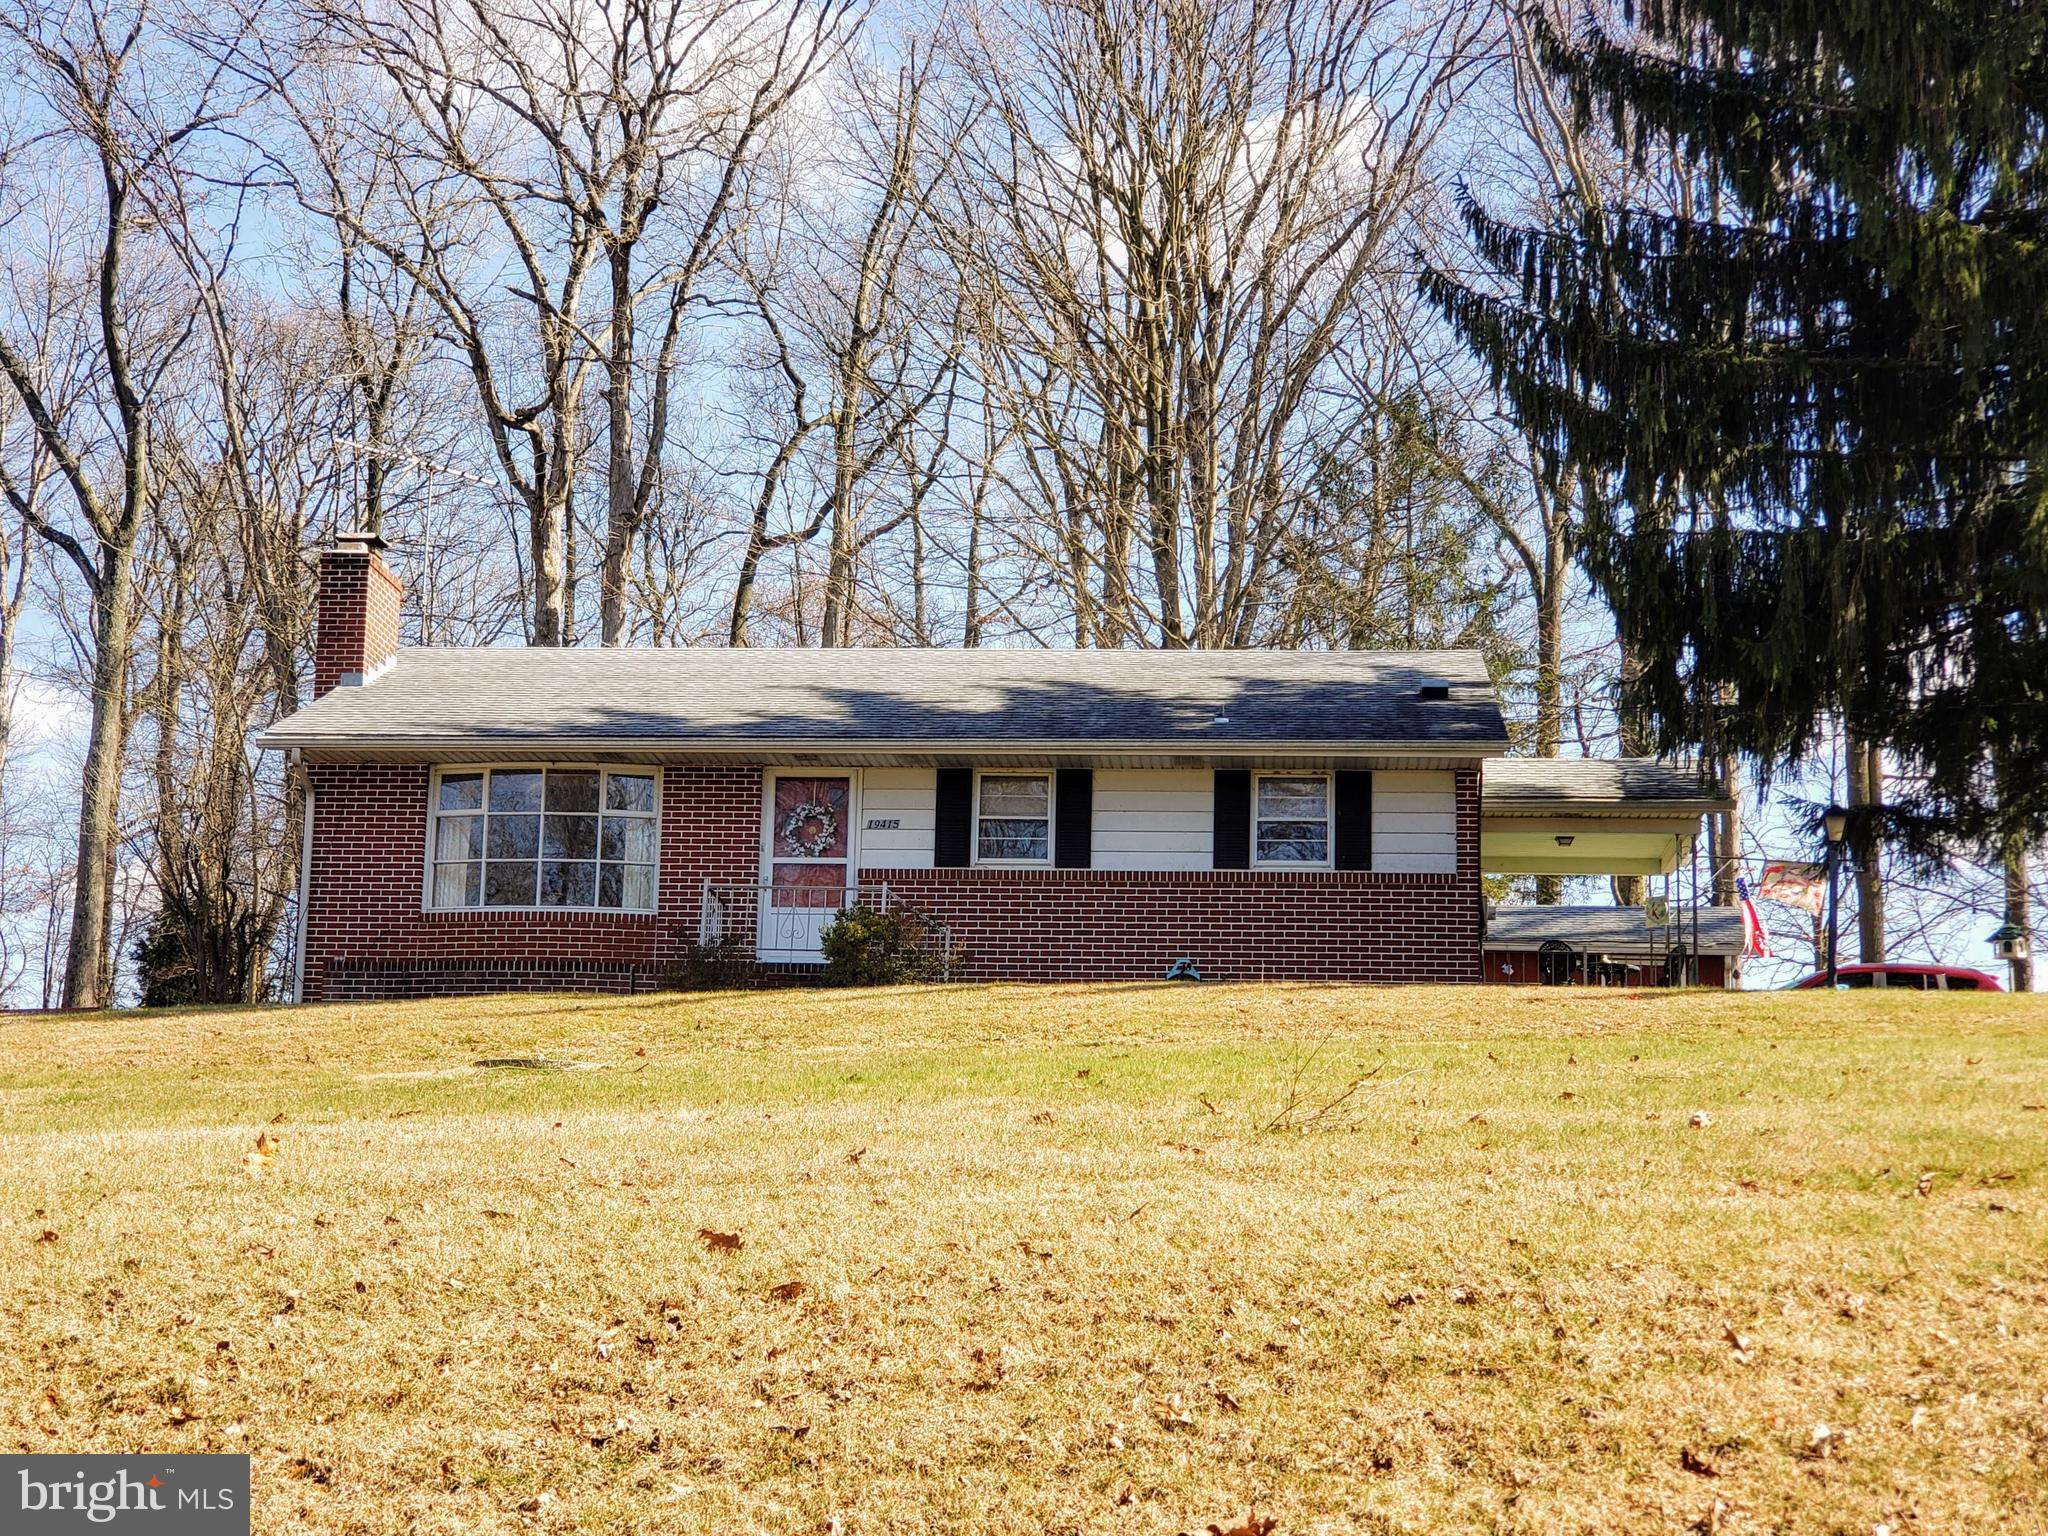 19415 GRAYSTONE ROAD, WHITE HALL, MD 21161